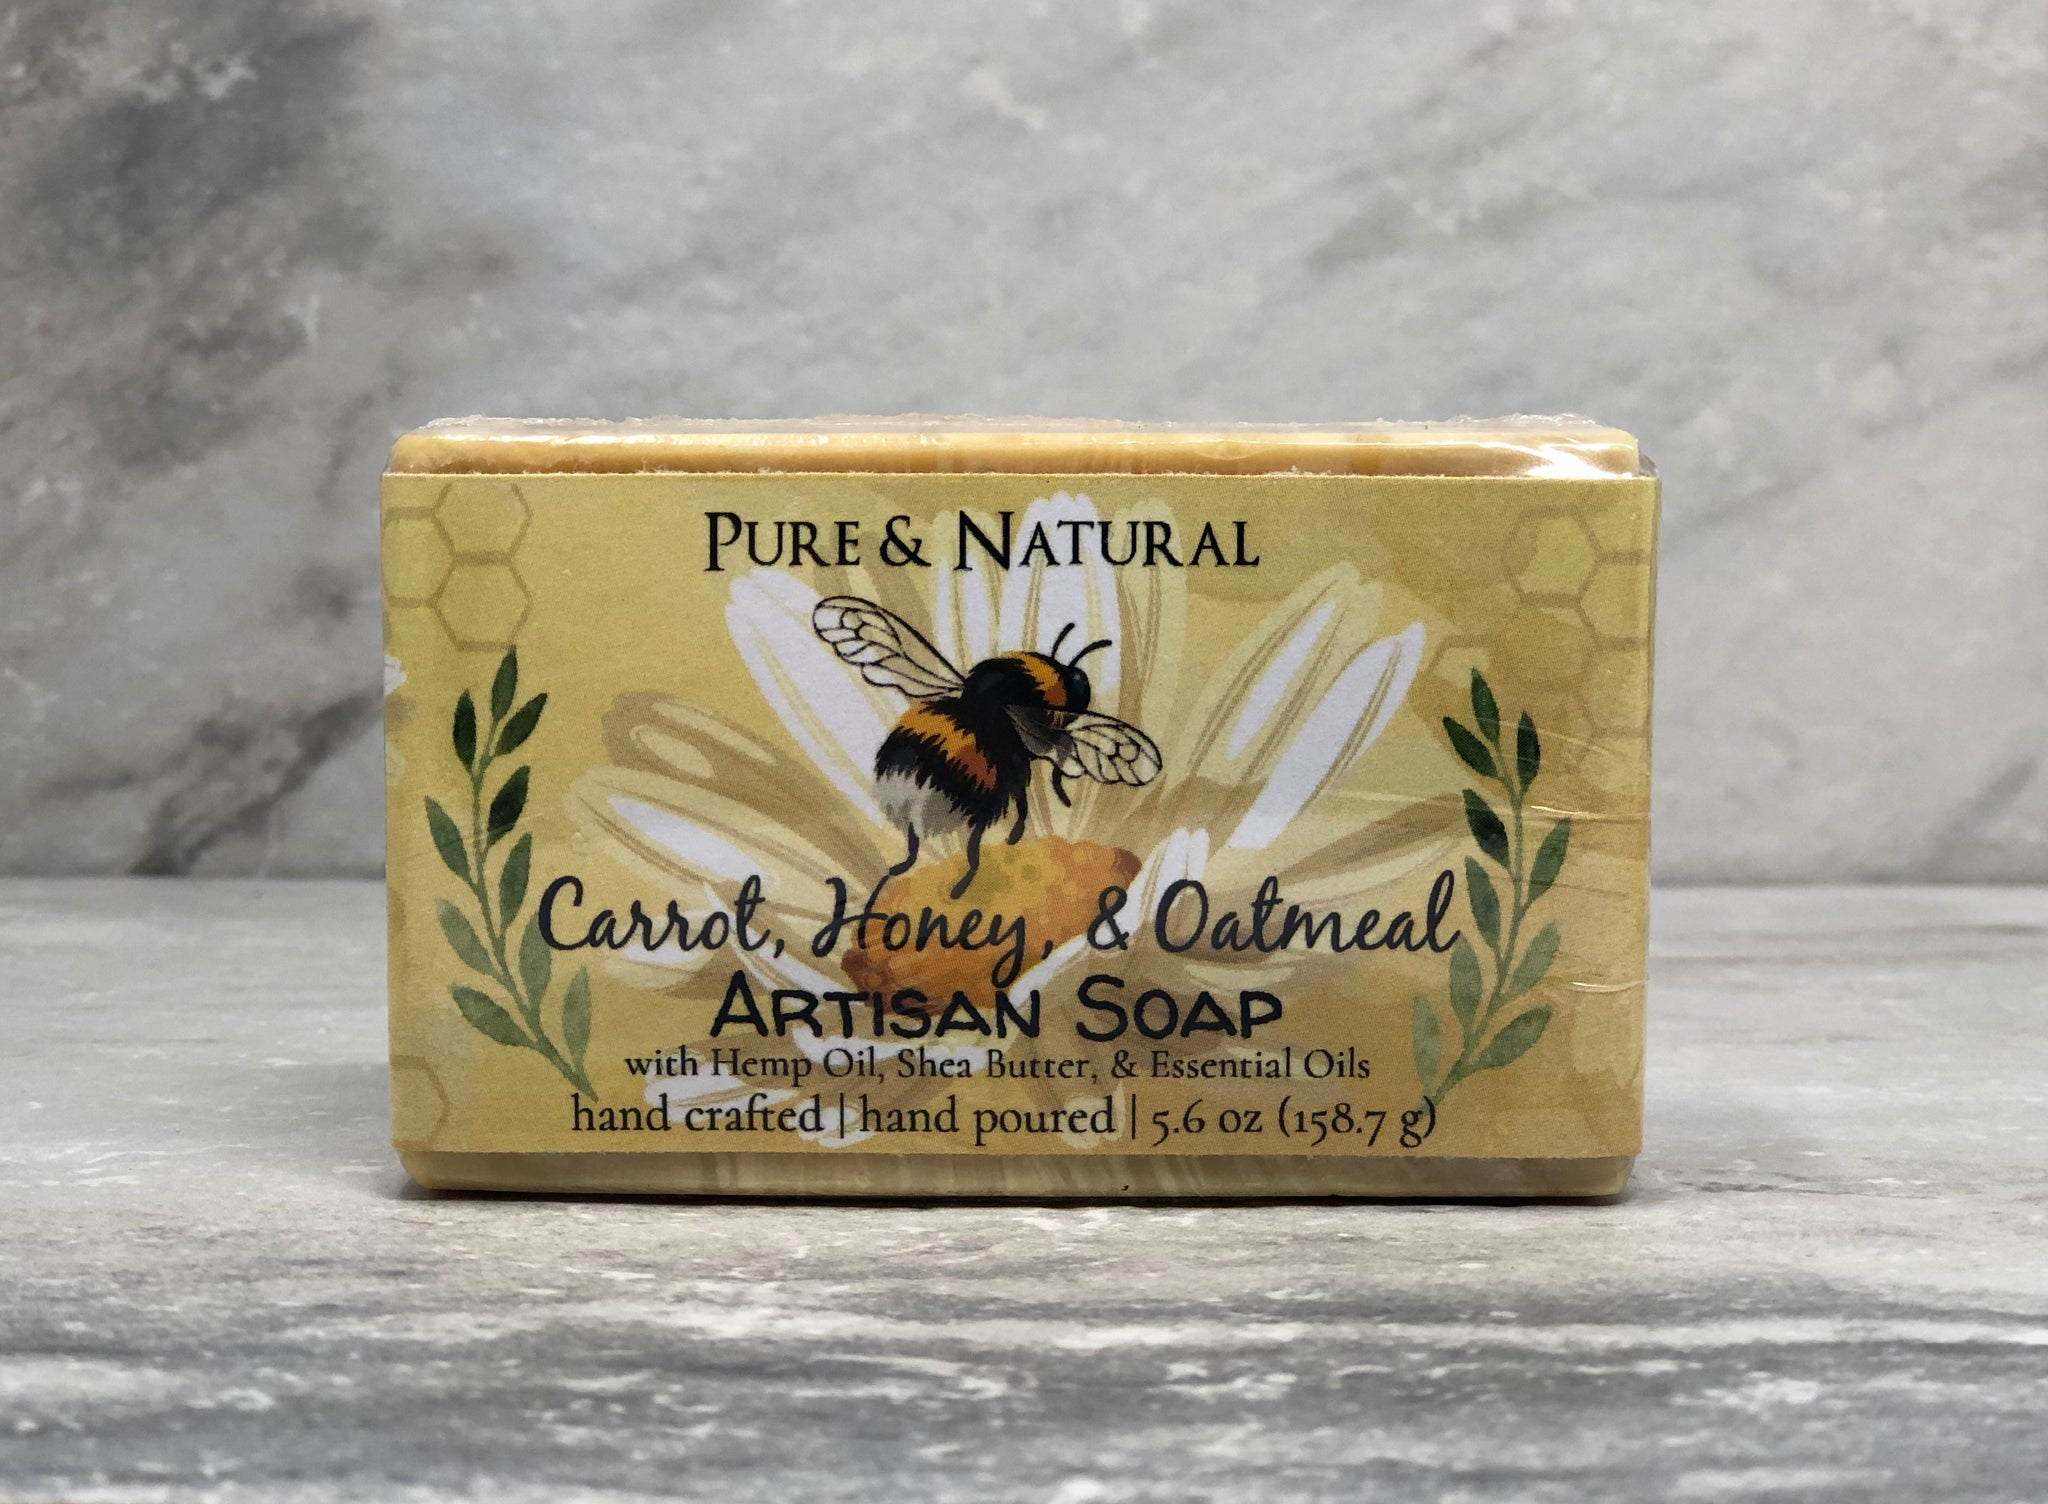 Carrot, Honey, & Oatmeal Pure & Natural Goat Milk Soap